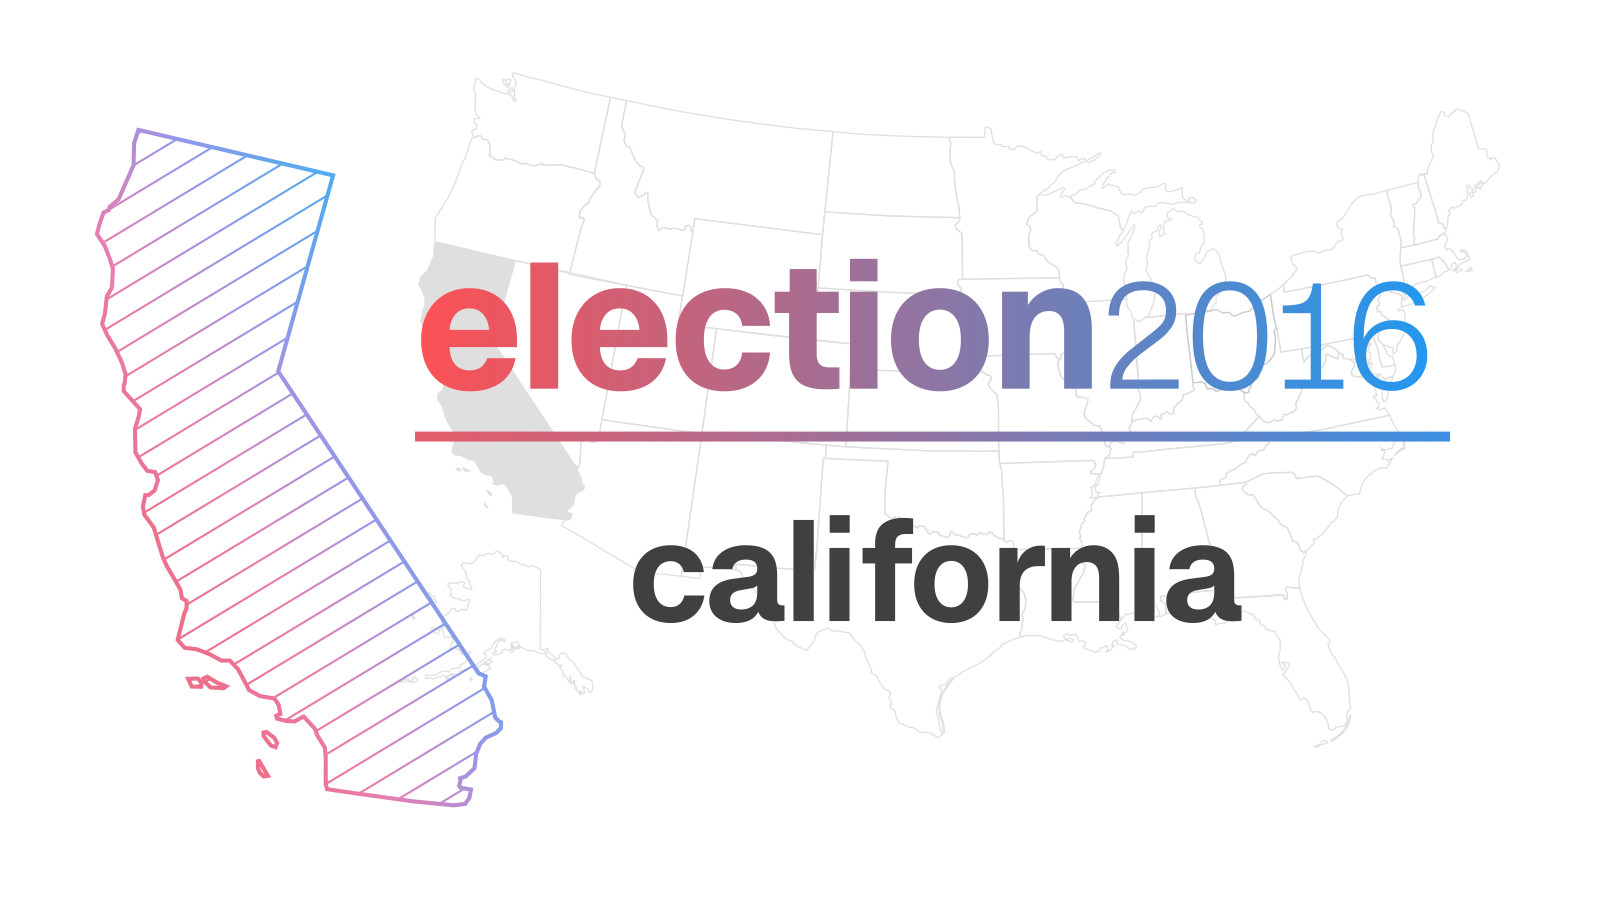 California Election Results 2016